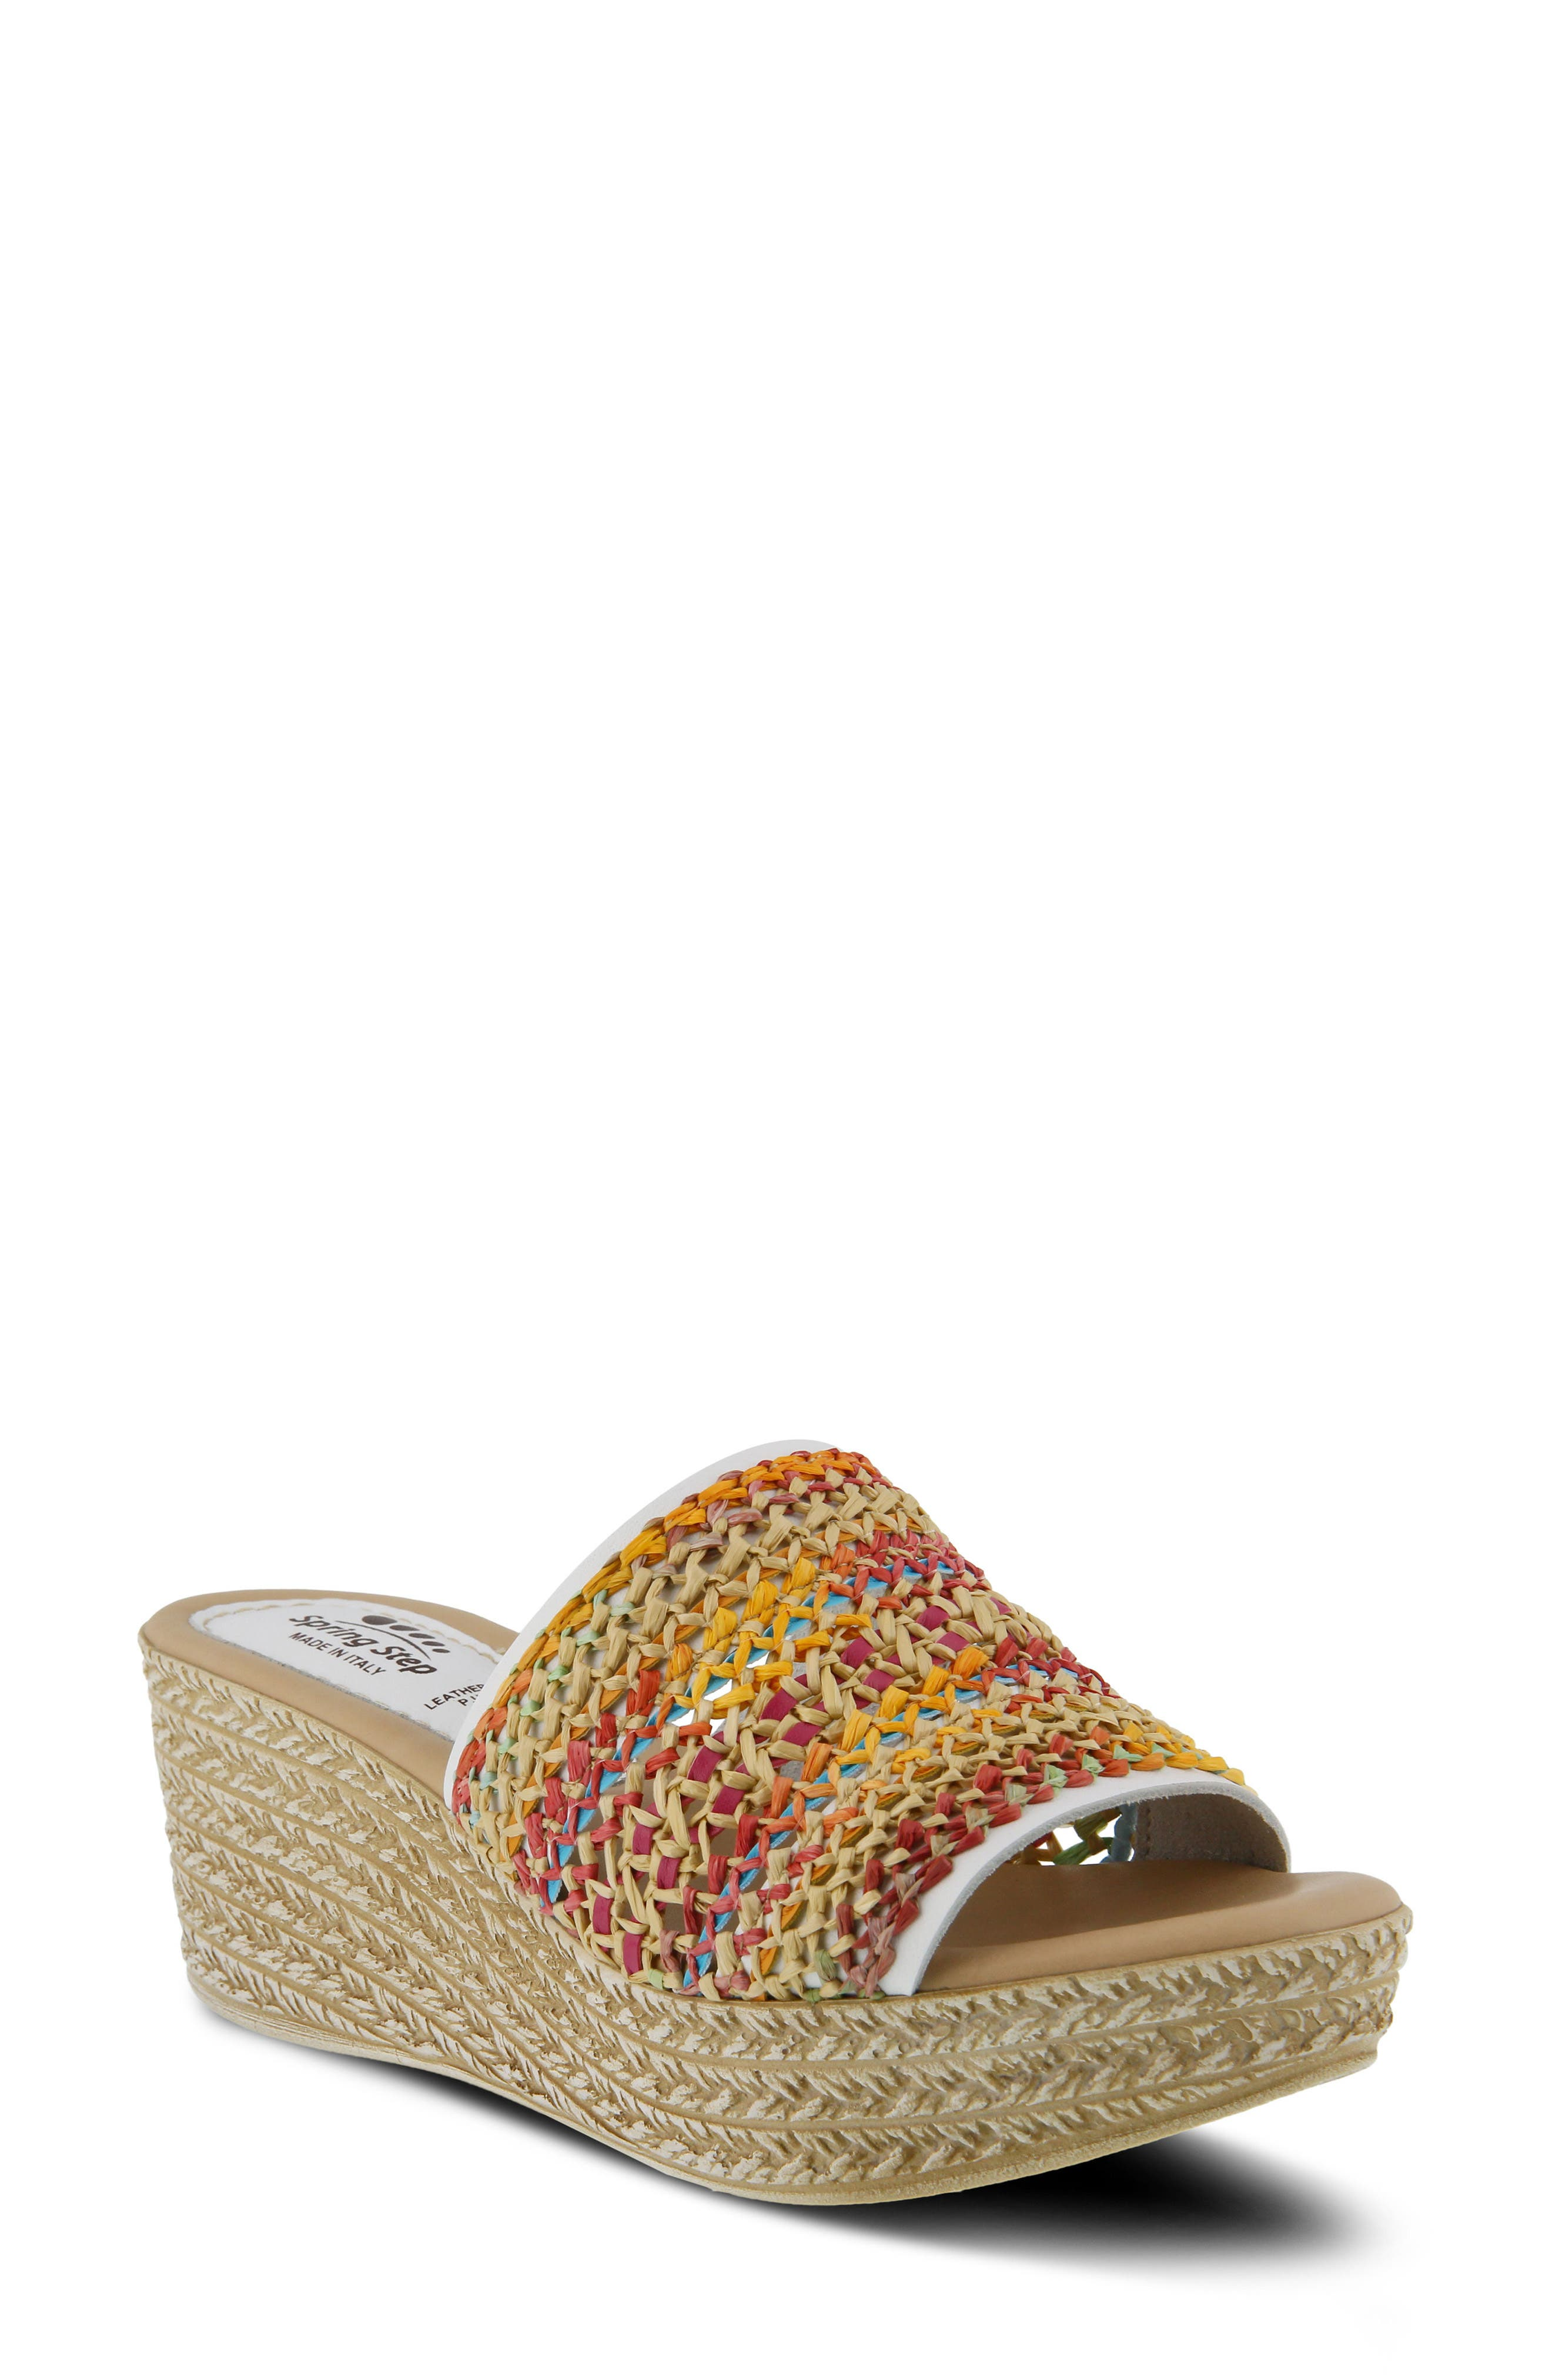 Calci Espadrille Wedge Sandal,                         Main,                         color, 100